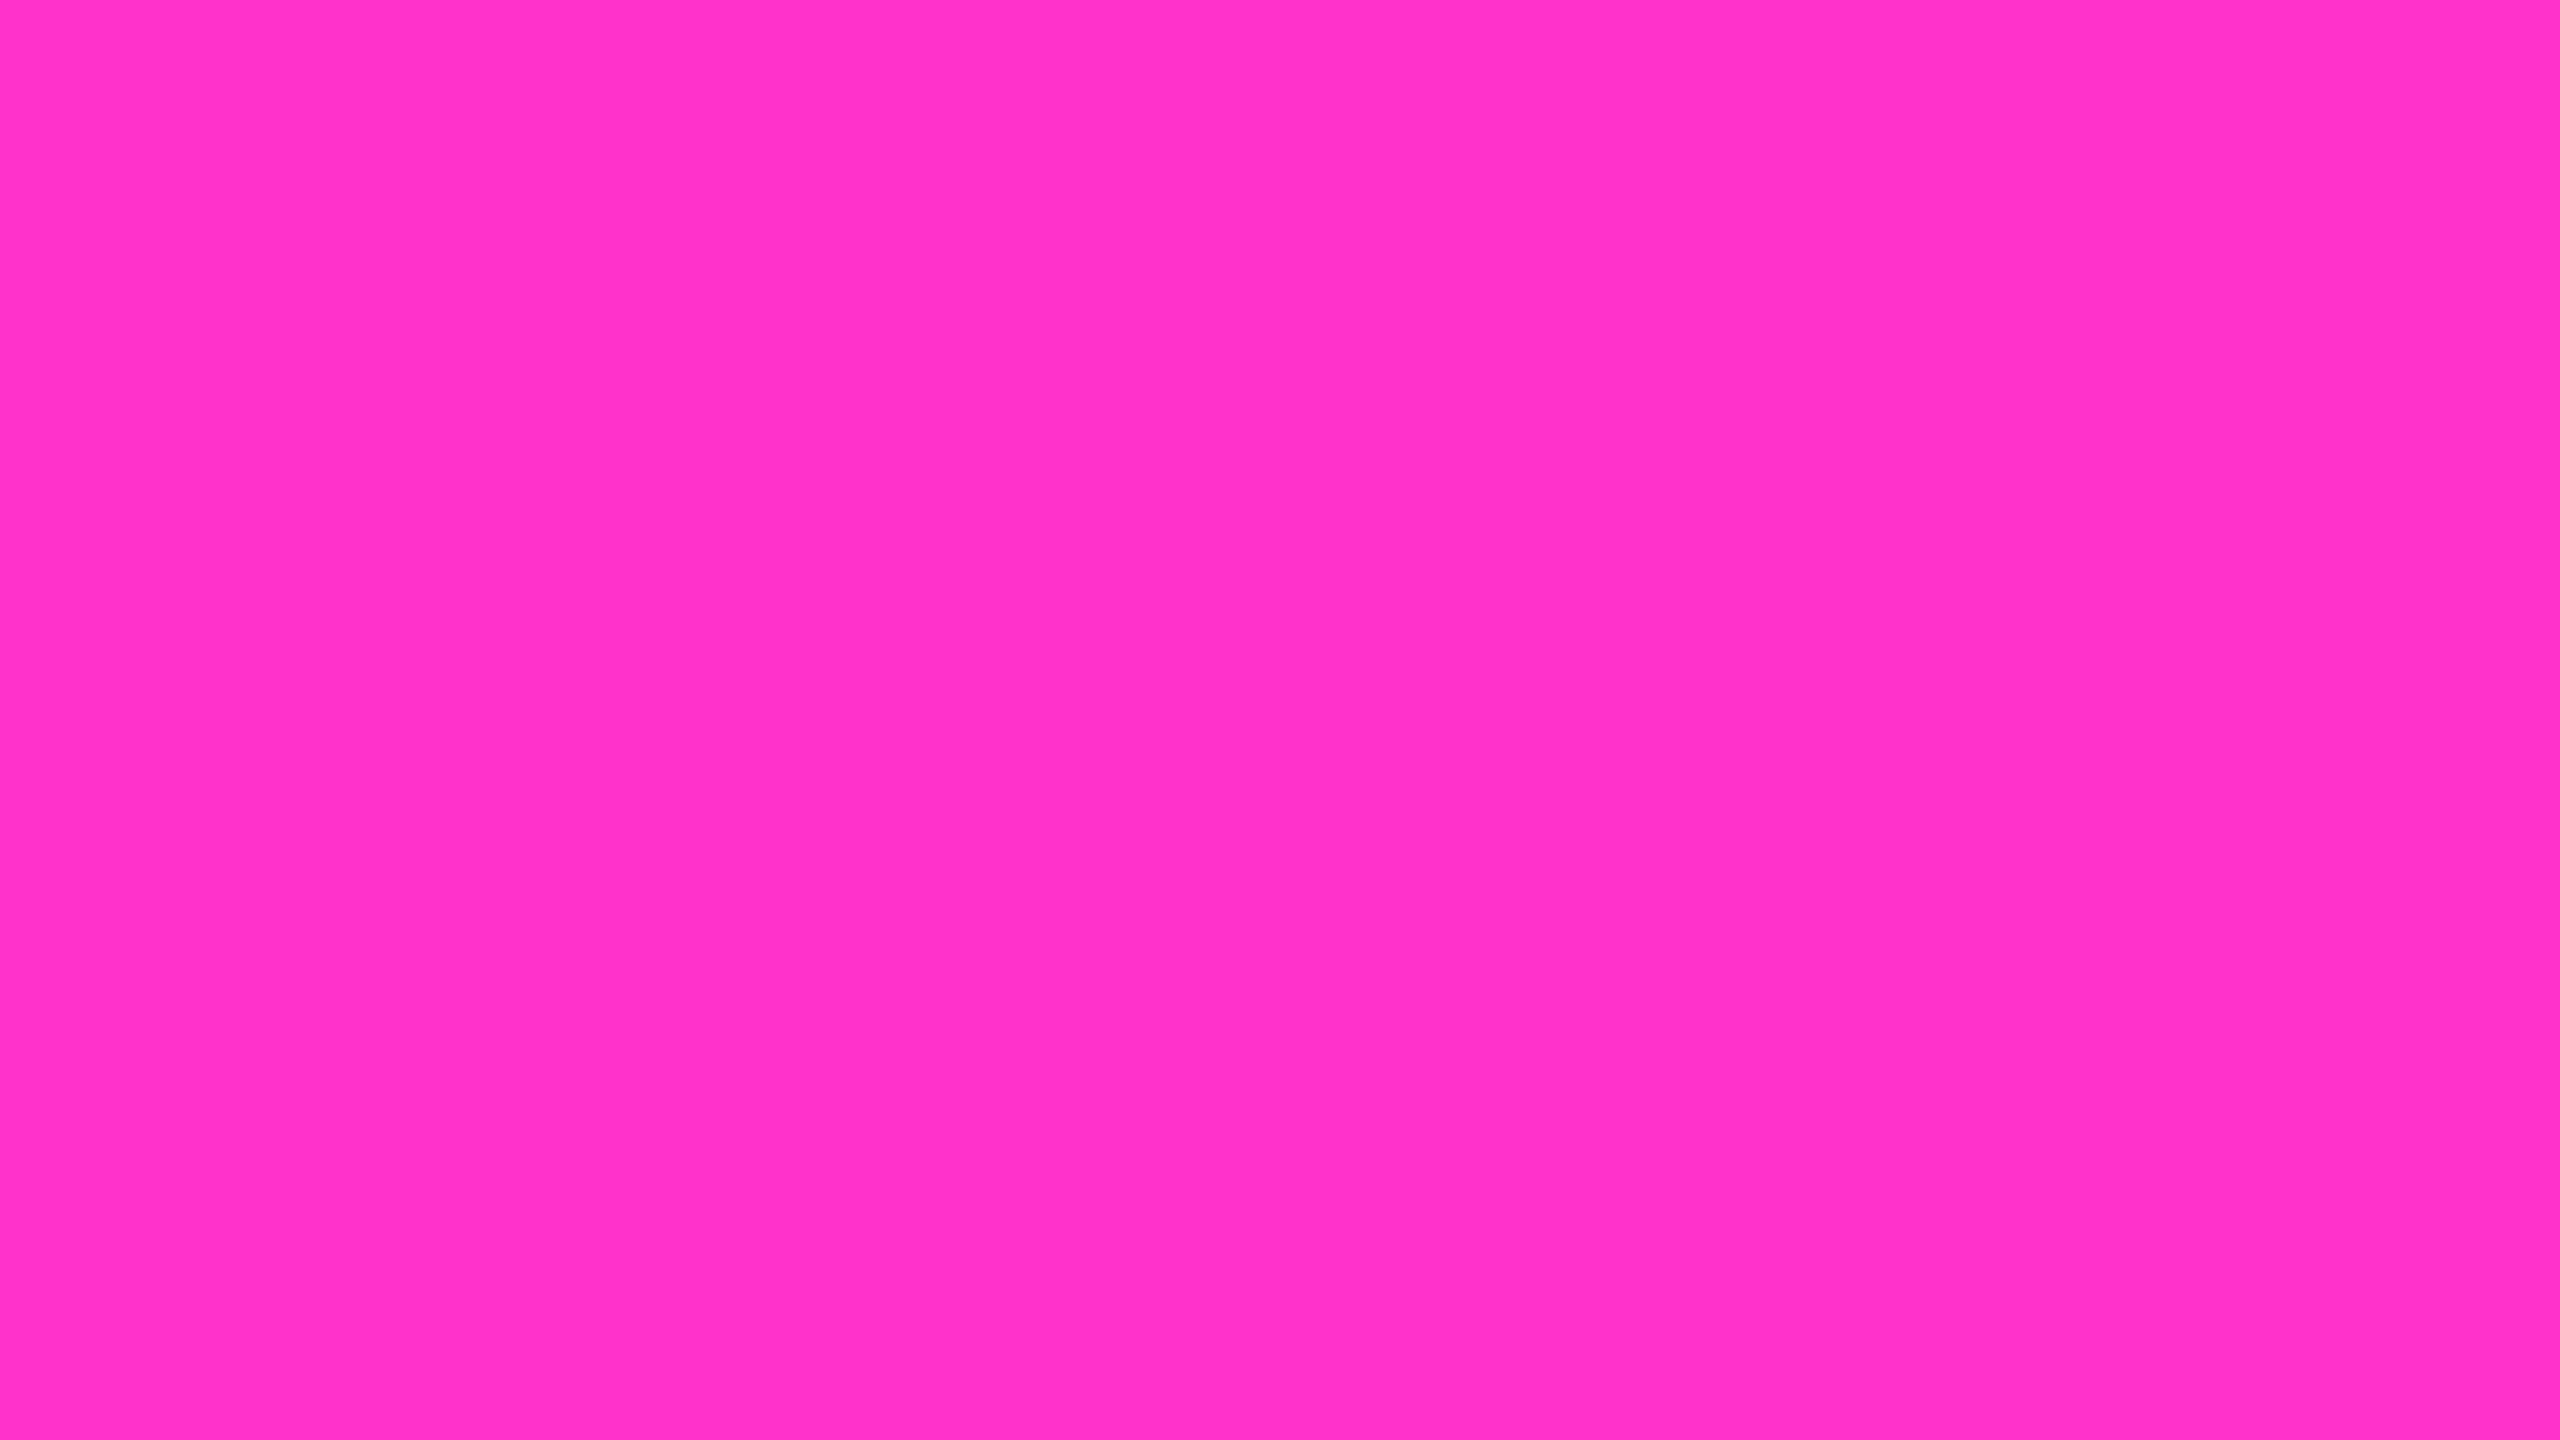 2560x1440 Razzle Dazzle Rose Solid Color Background